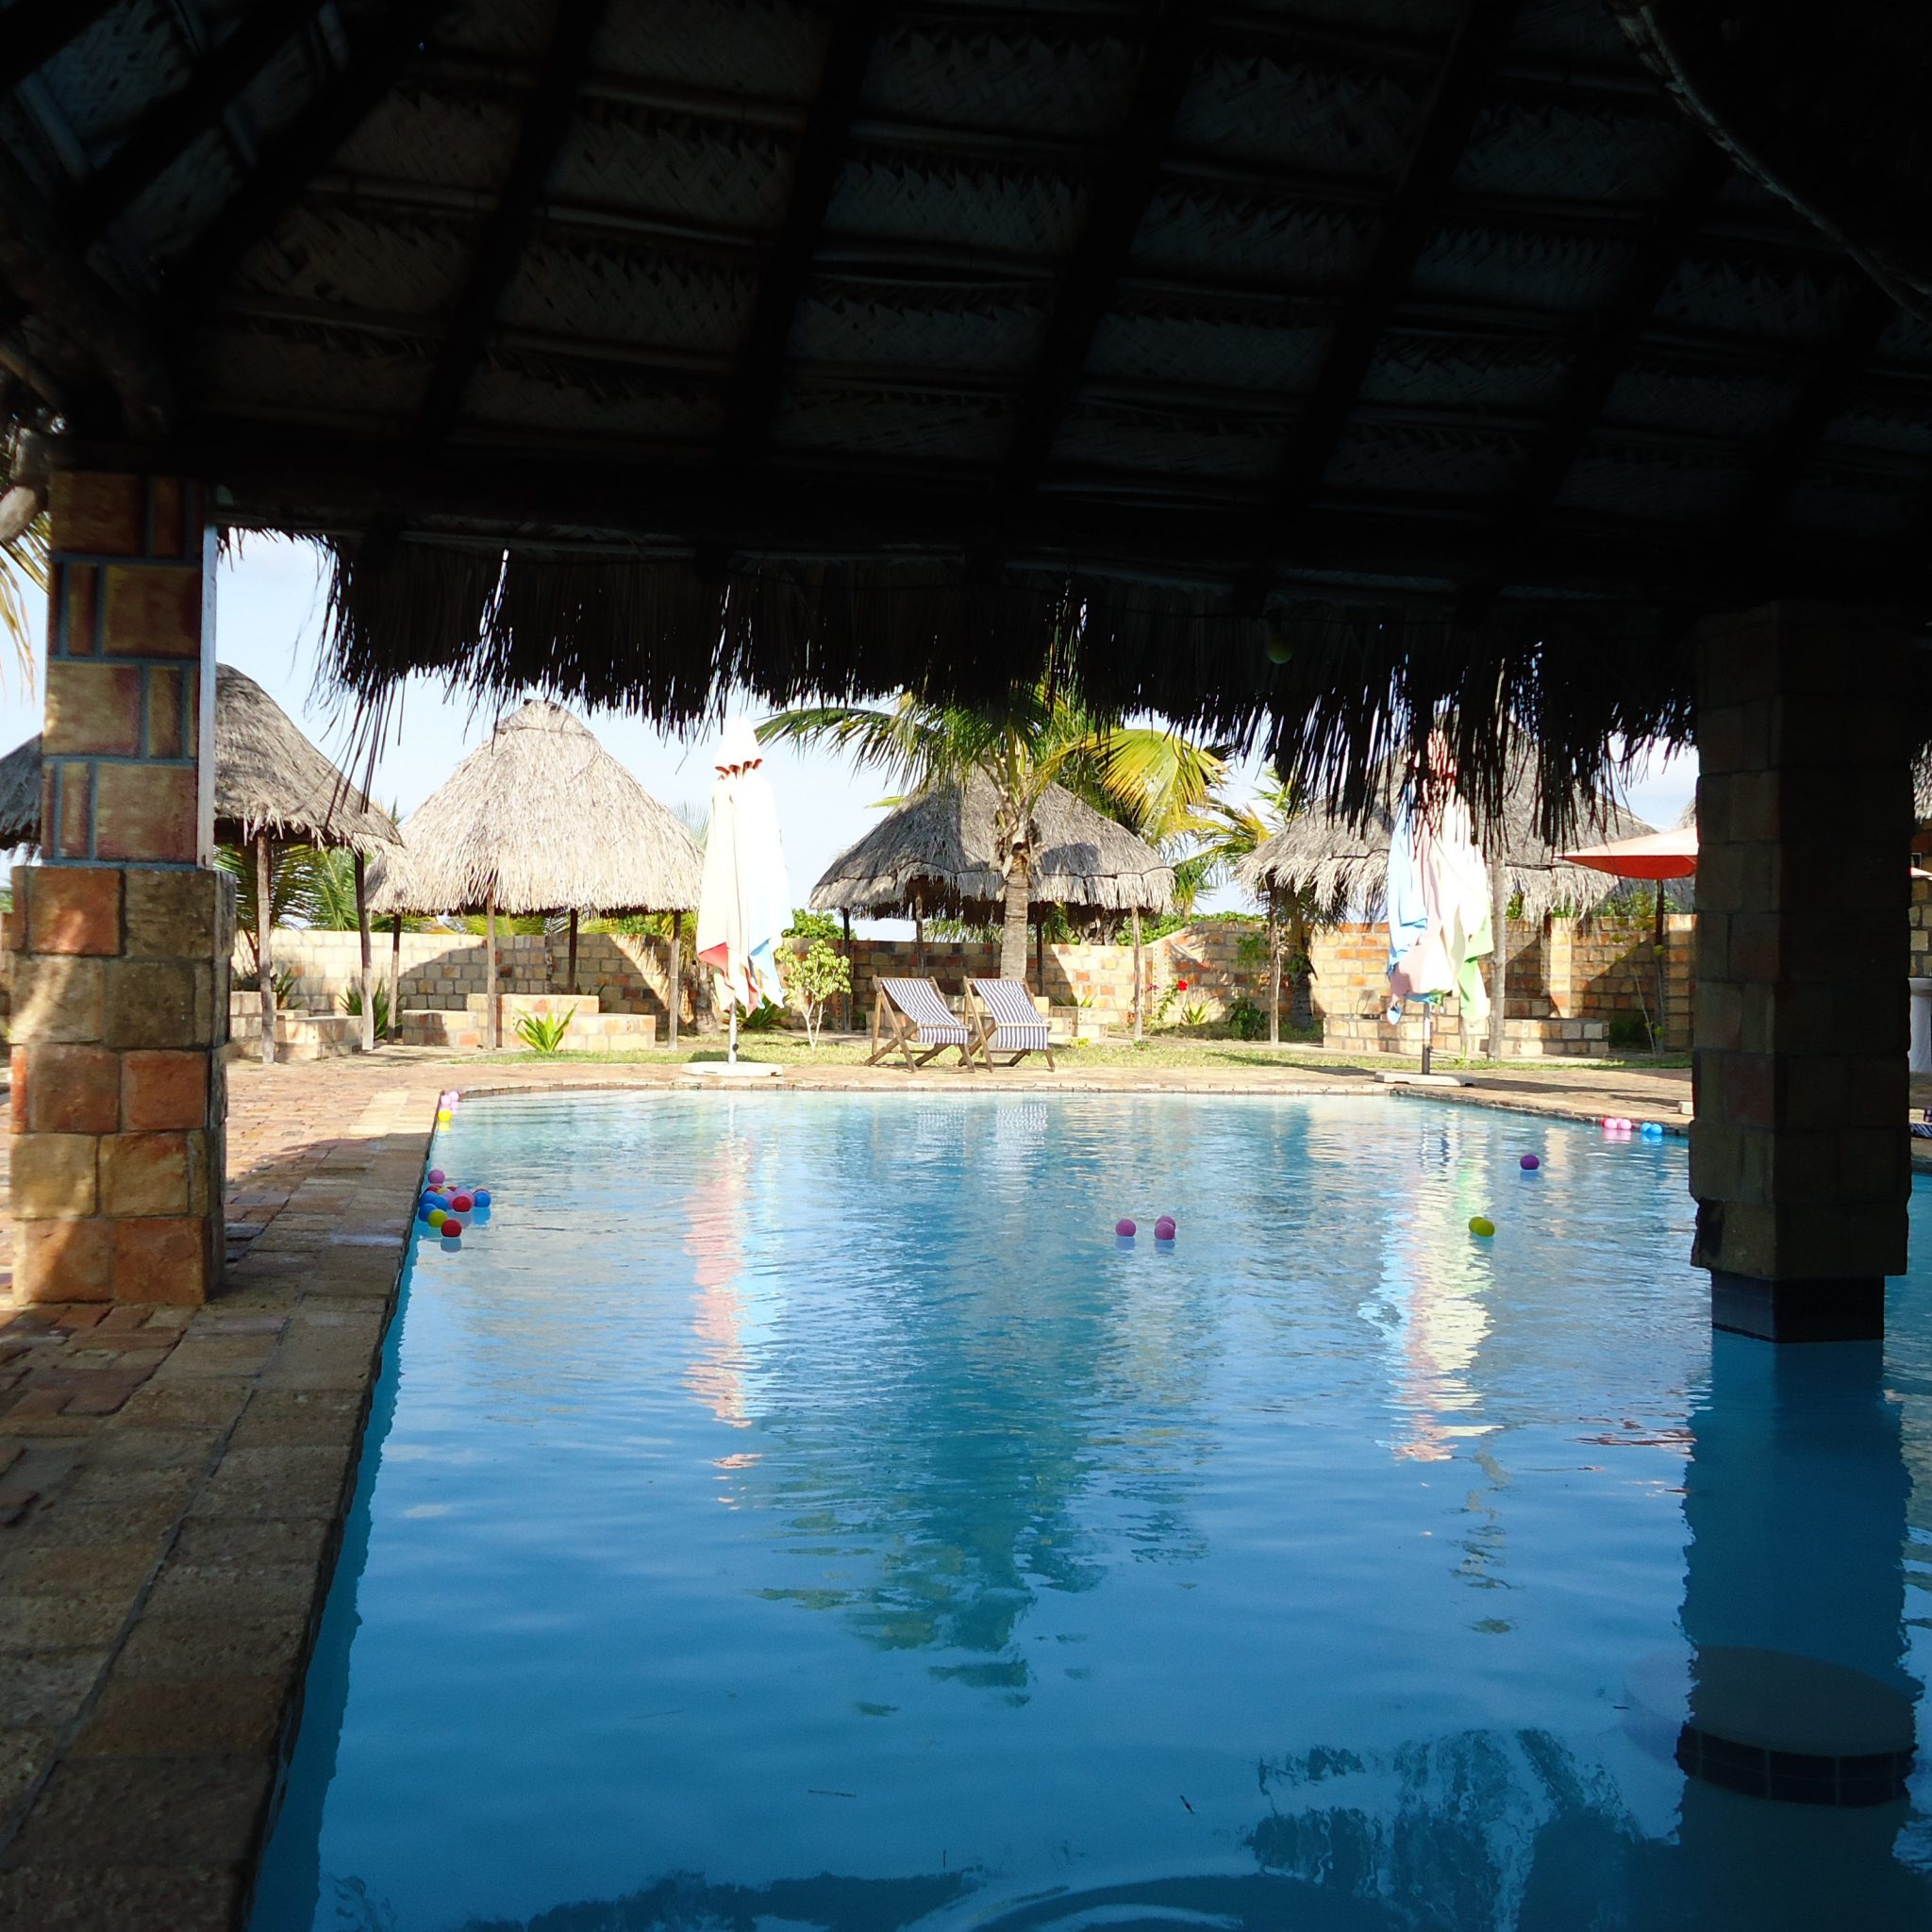 Sunset Lodge Accommodation In Barra Inhambane Mozambique